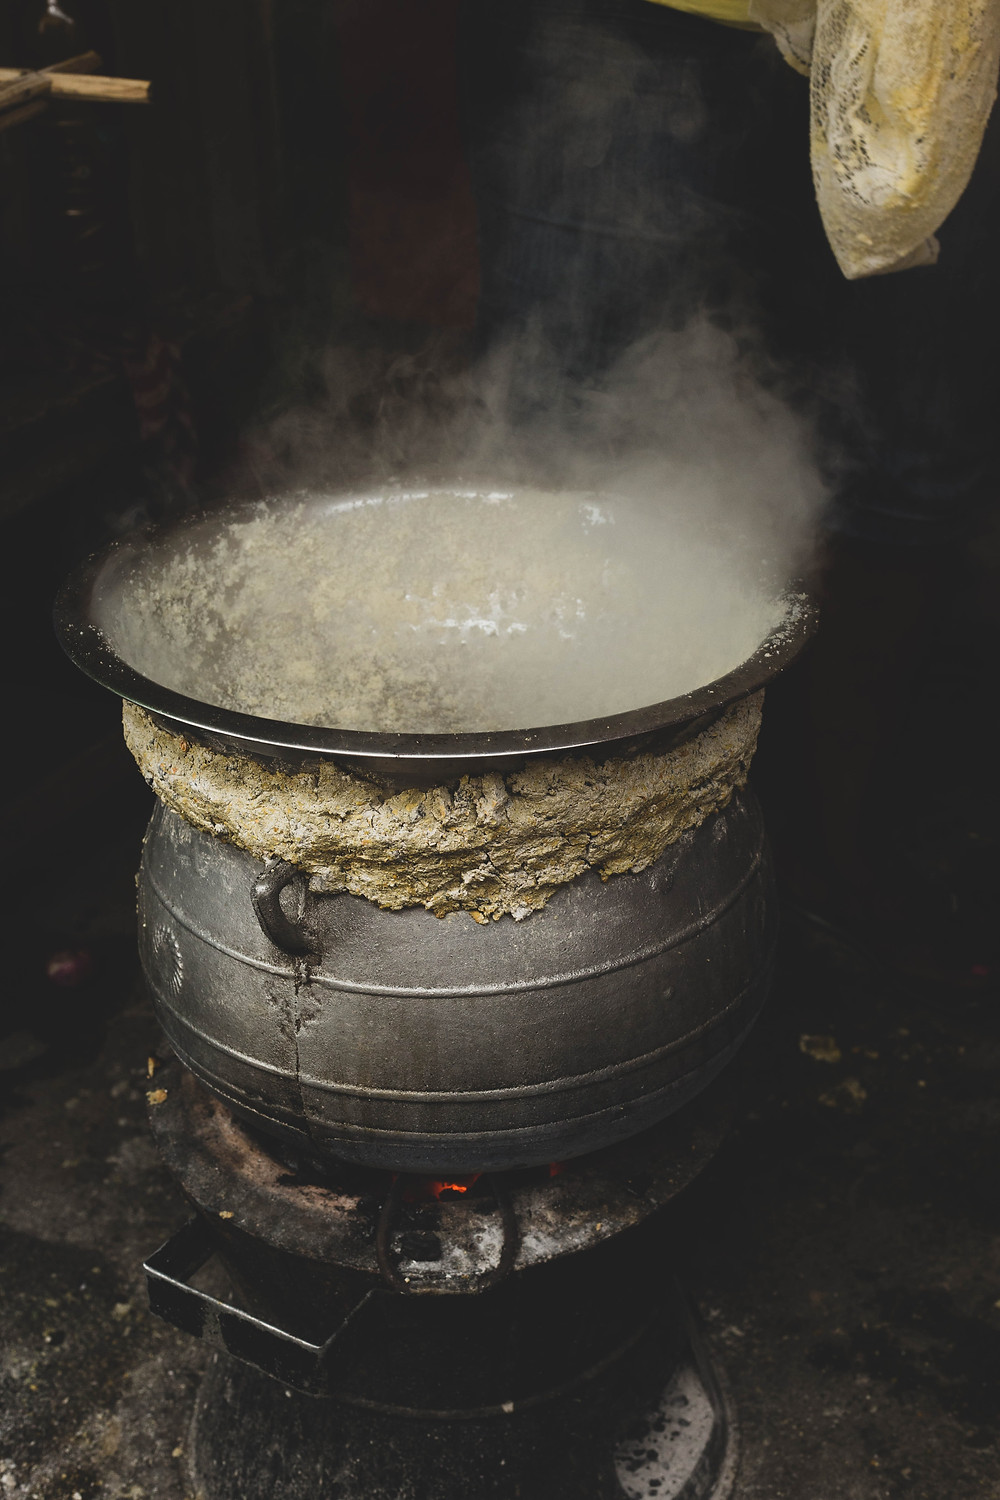 An image of a steaming cauldron, with mud caked around its edge.